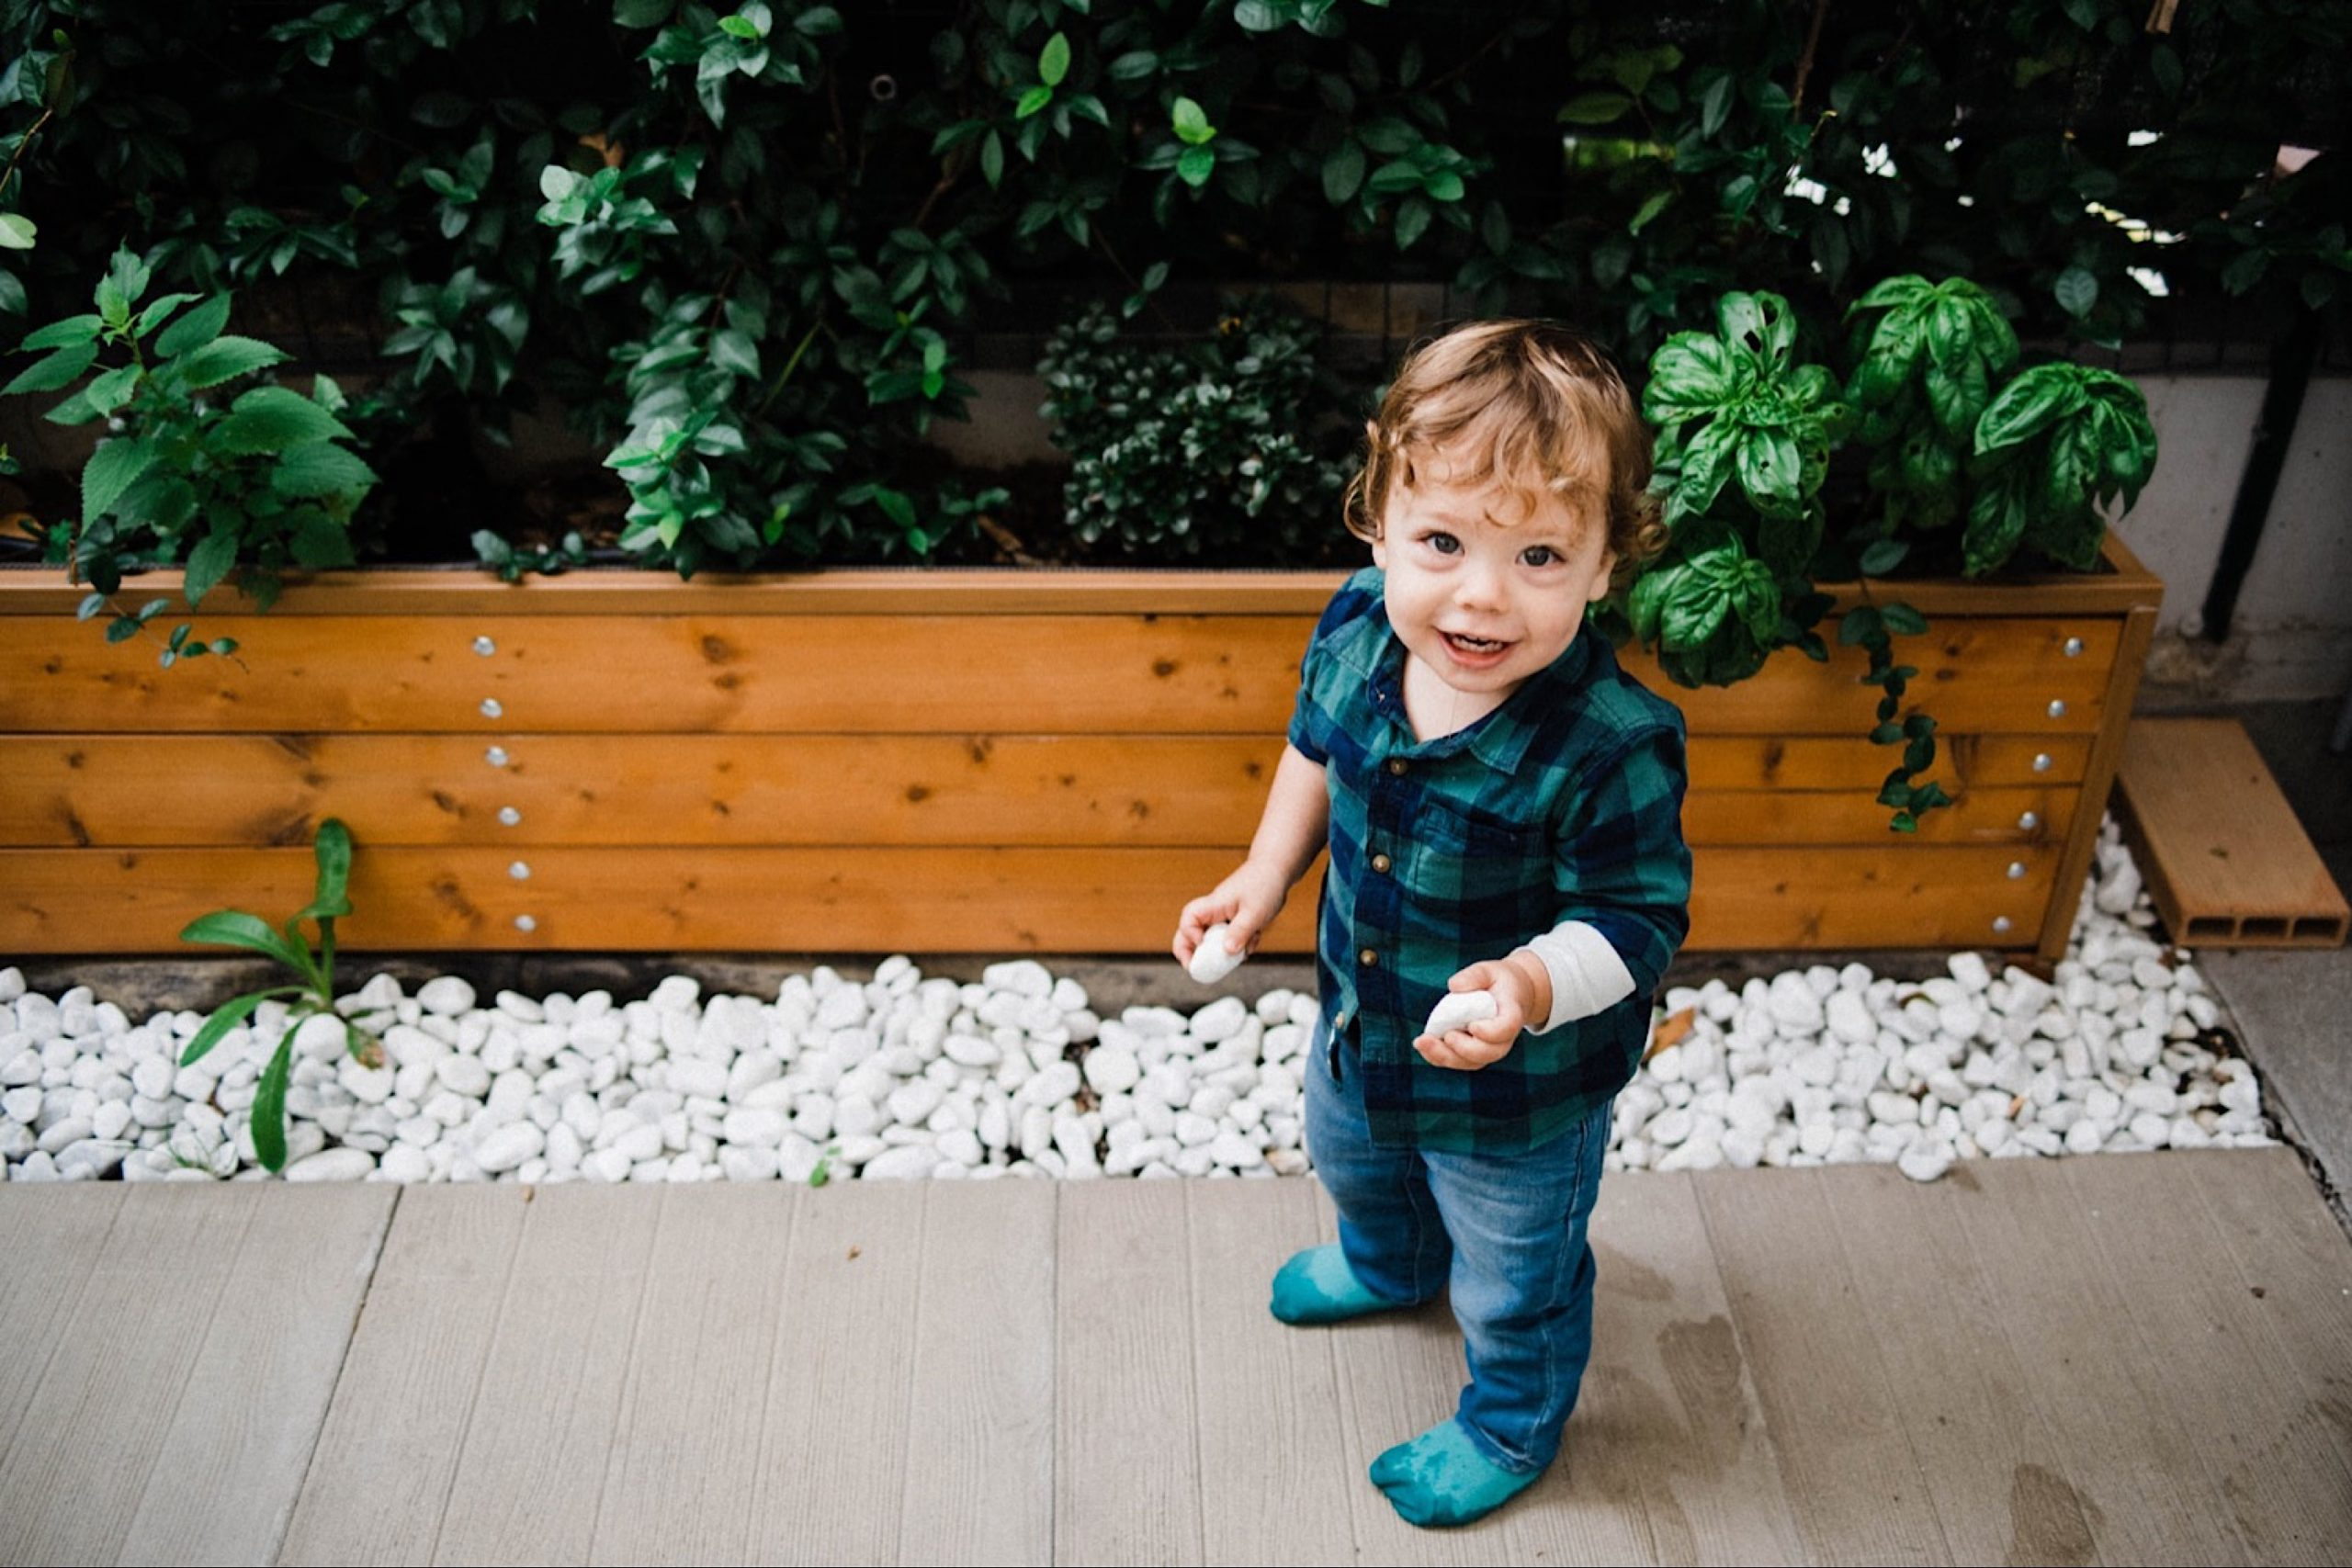 In-Home Family Photography in Milan of a toddler holding pebbles from his garden and smiling.